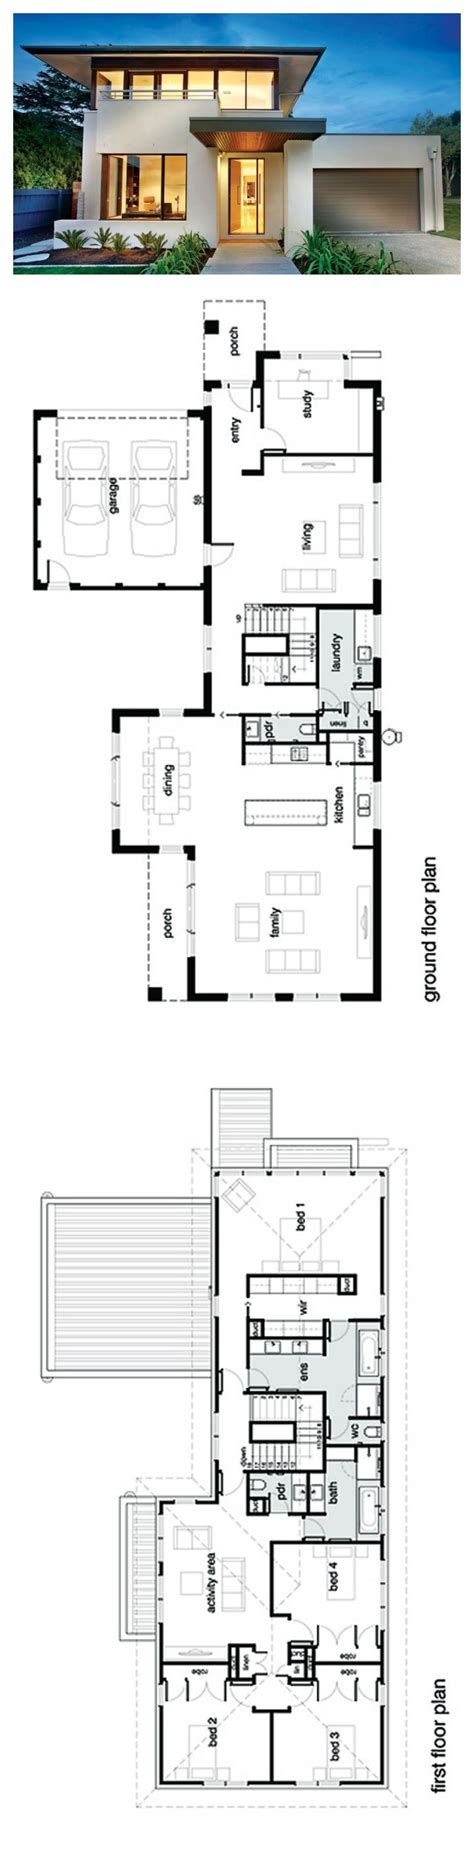 modern contemporary floor plans best 25 modern house plans ideas on pinterest modern floor plans modern house floor plans